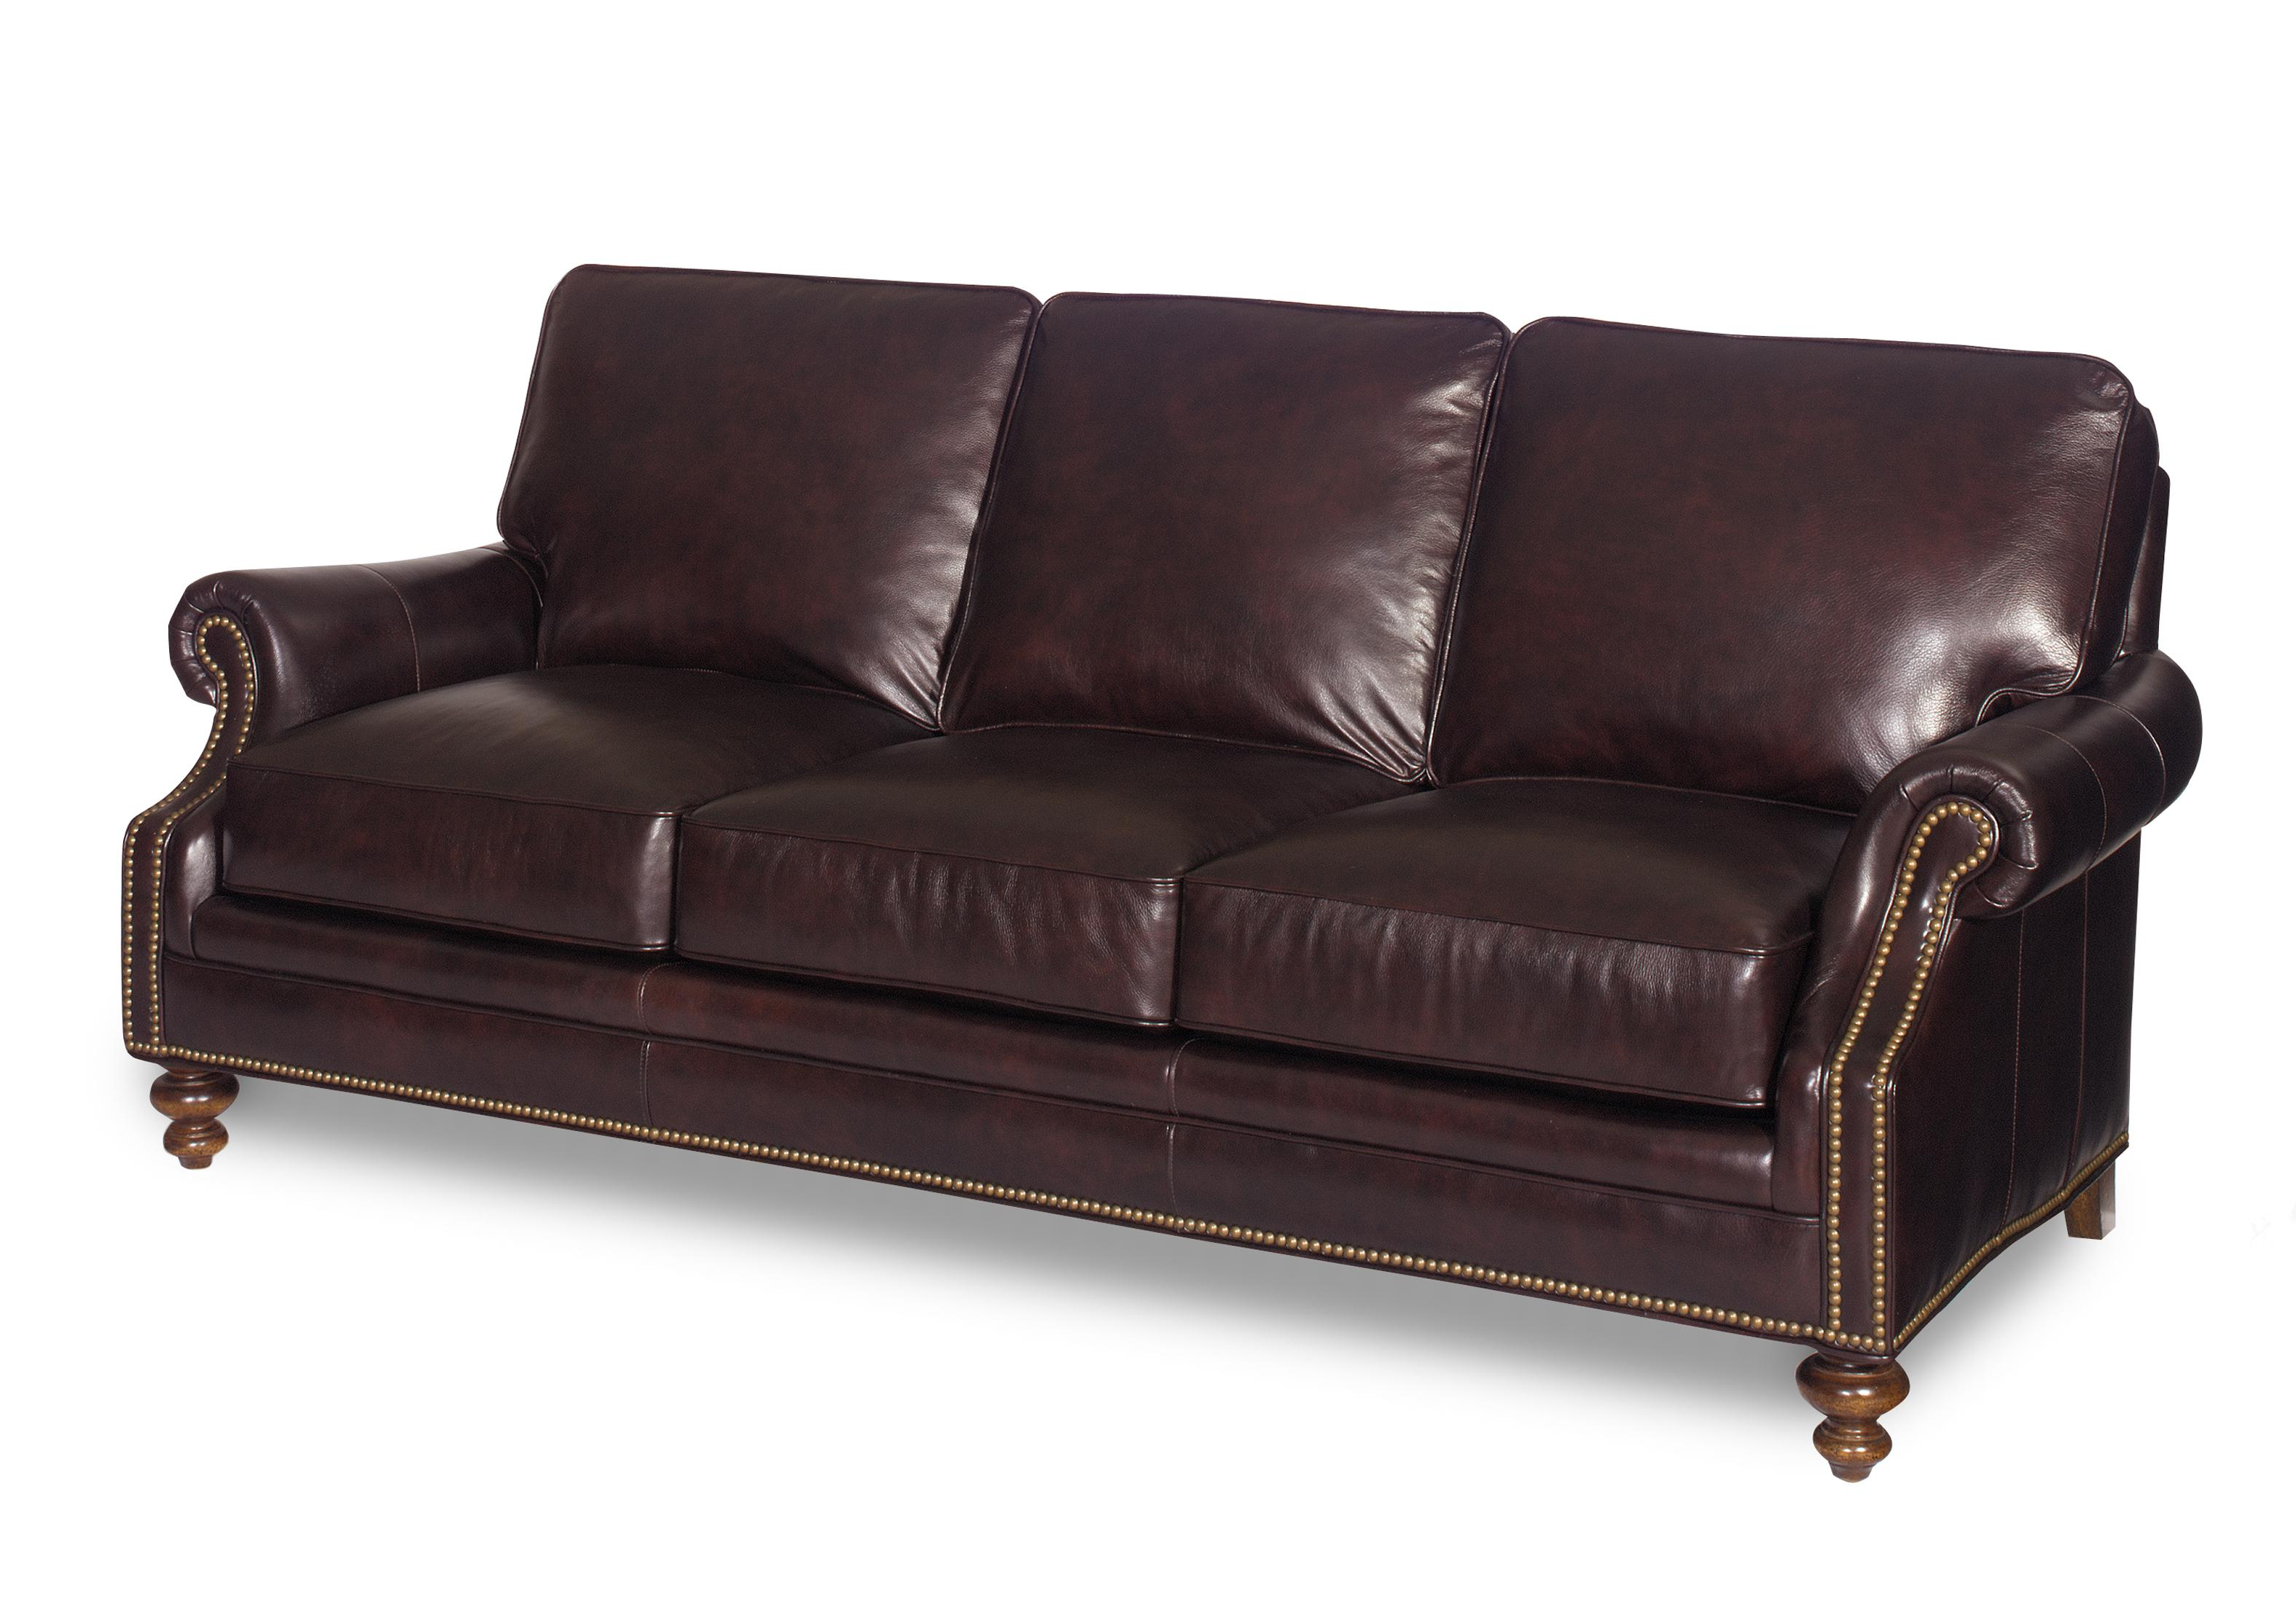 West Haven Stationary Sofa